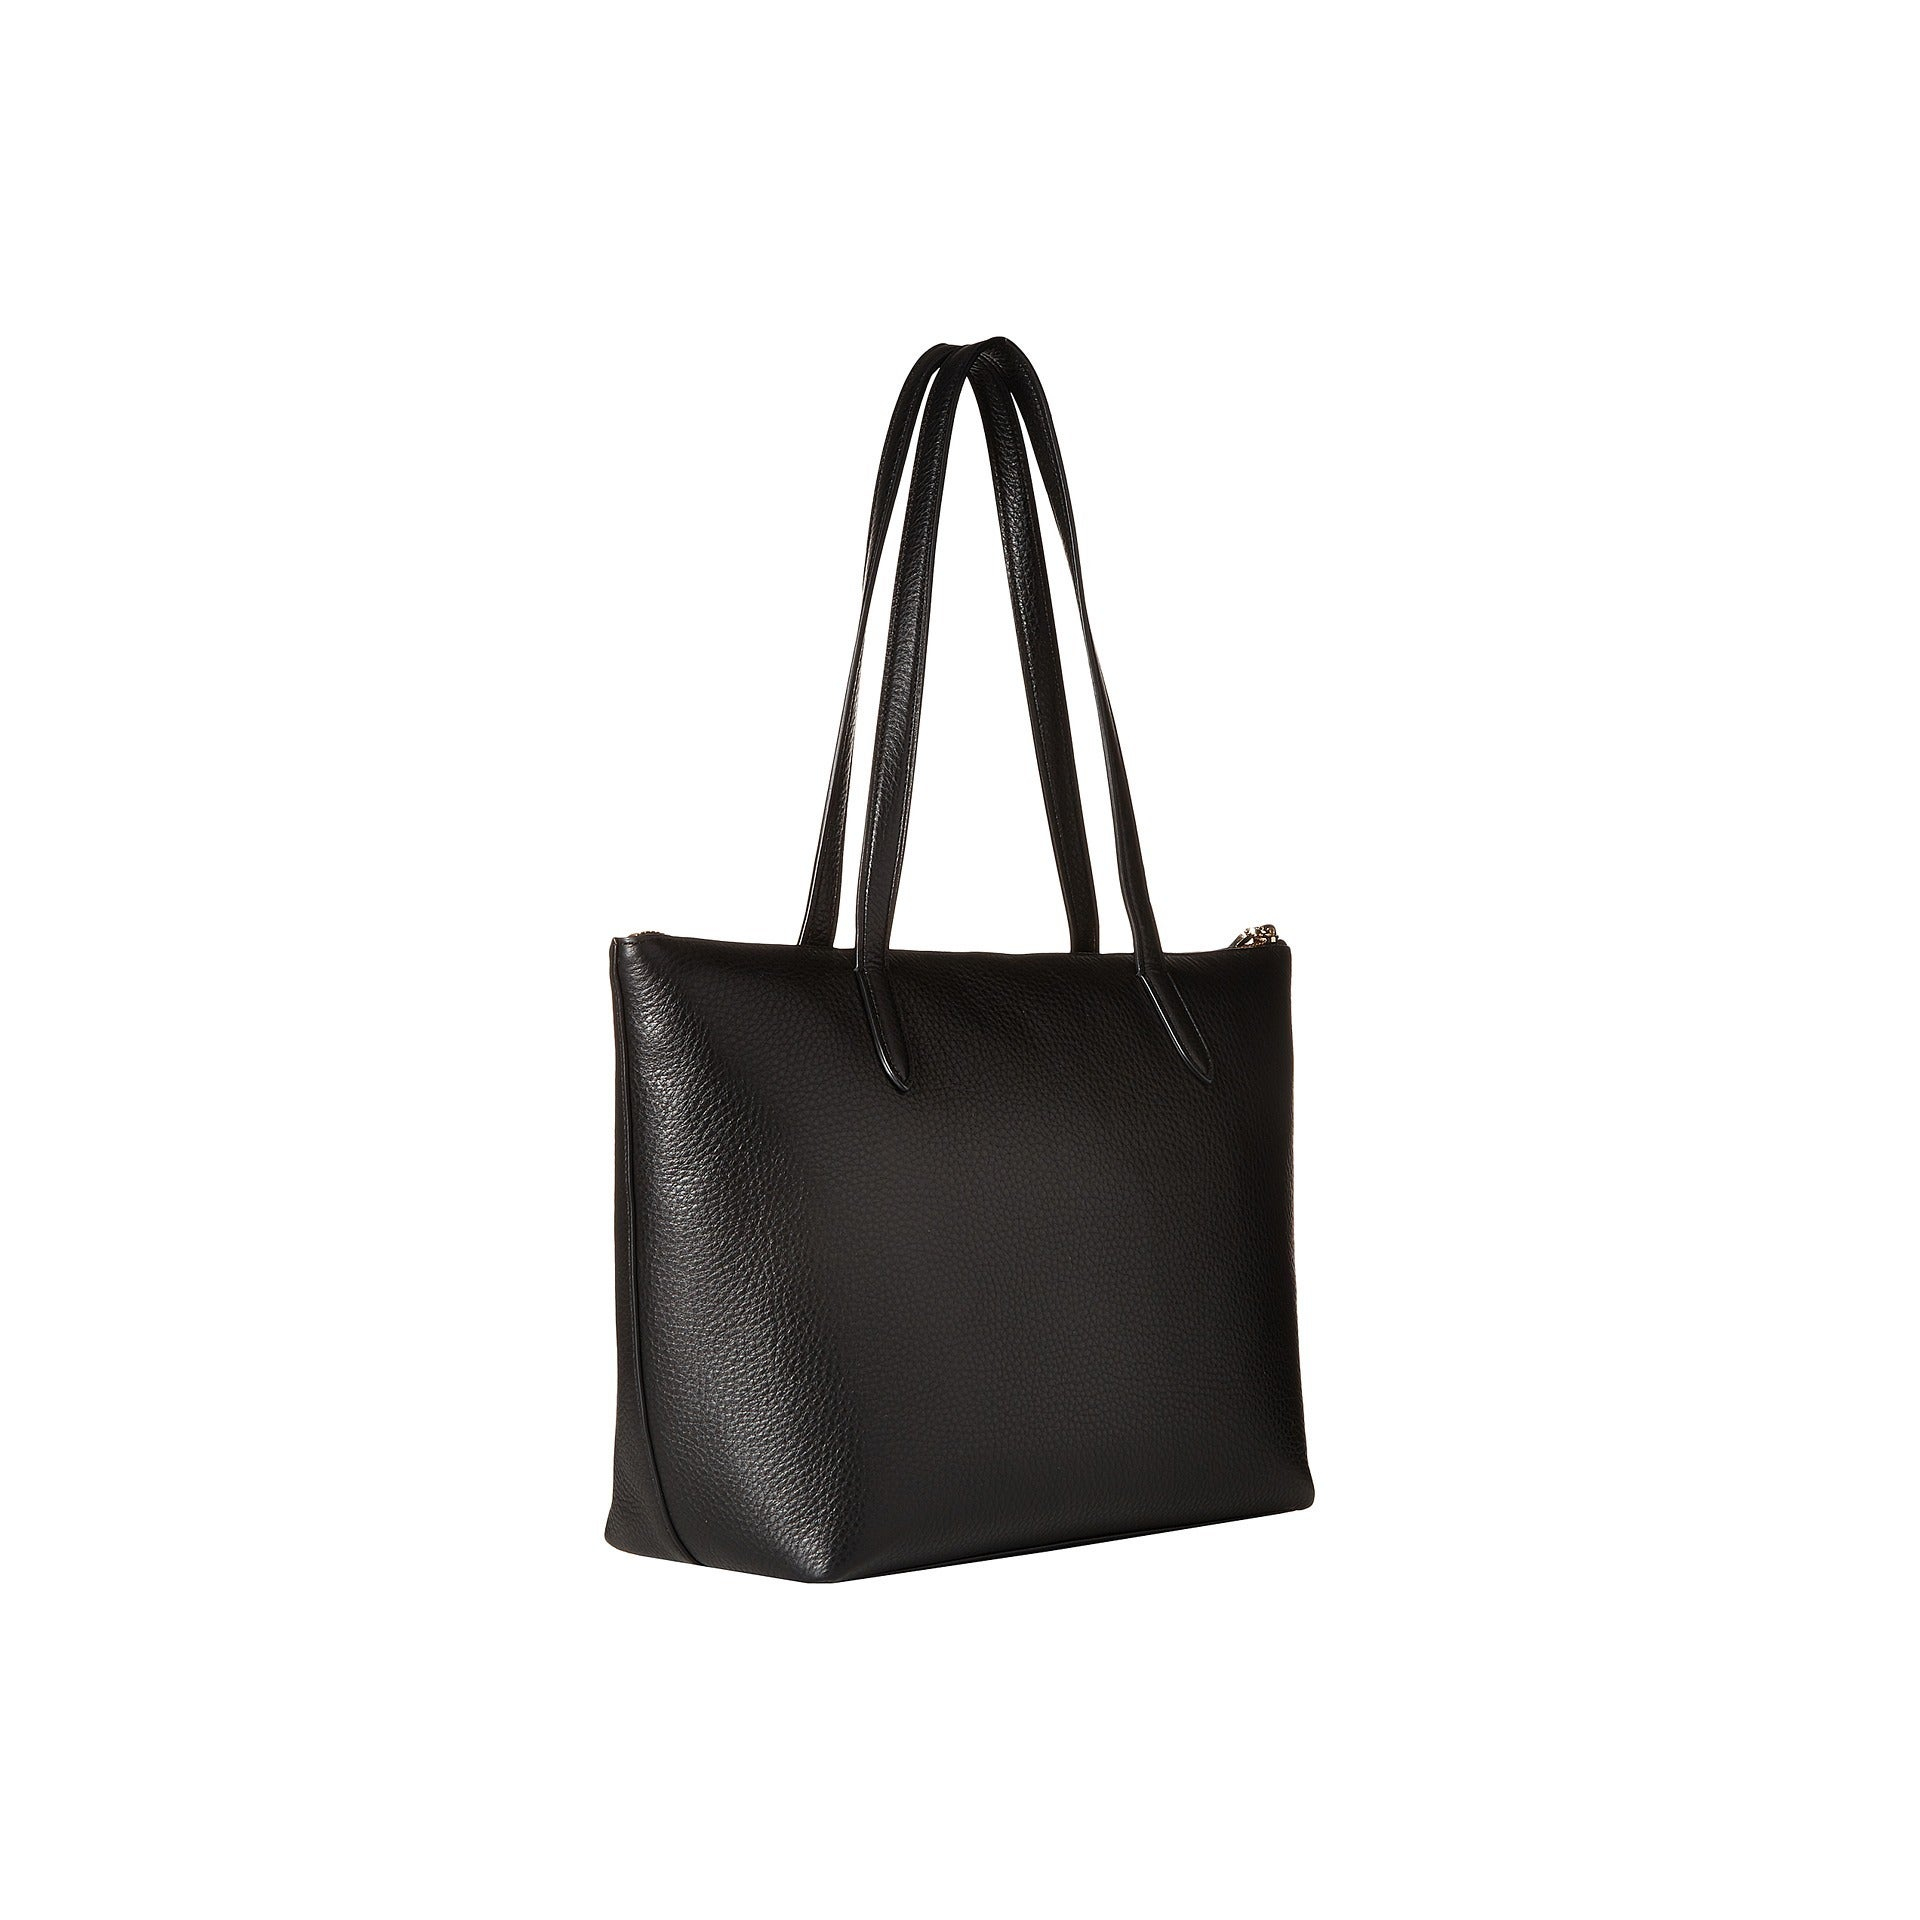 0362fdfbc Shop Coach Taylor Pebbled Black Leather Tote Bag - Free Shipping Today -  Overstock - 13477133